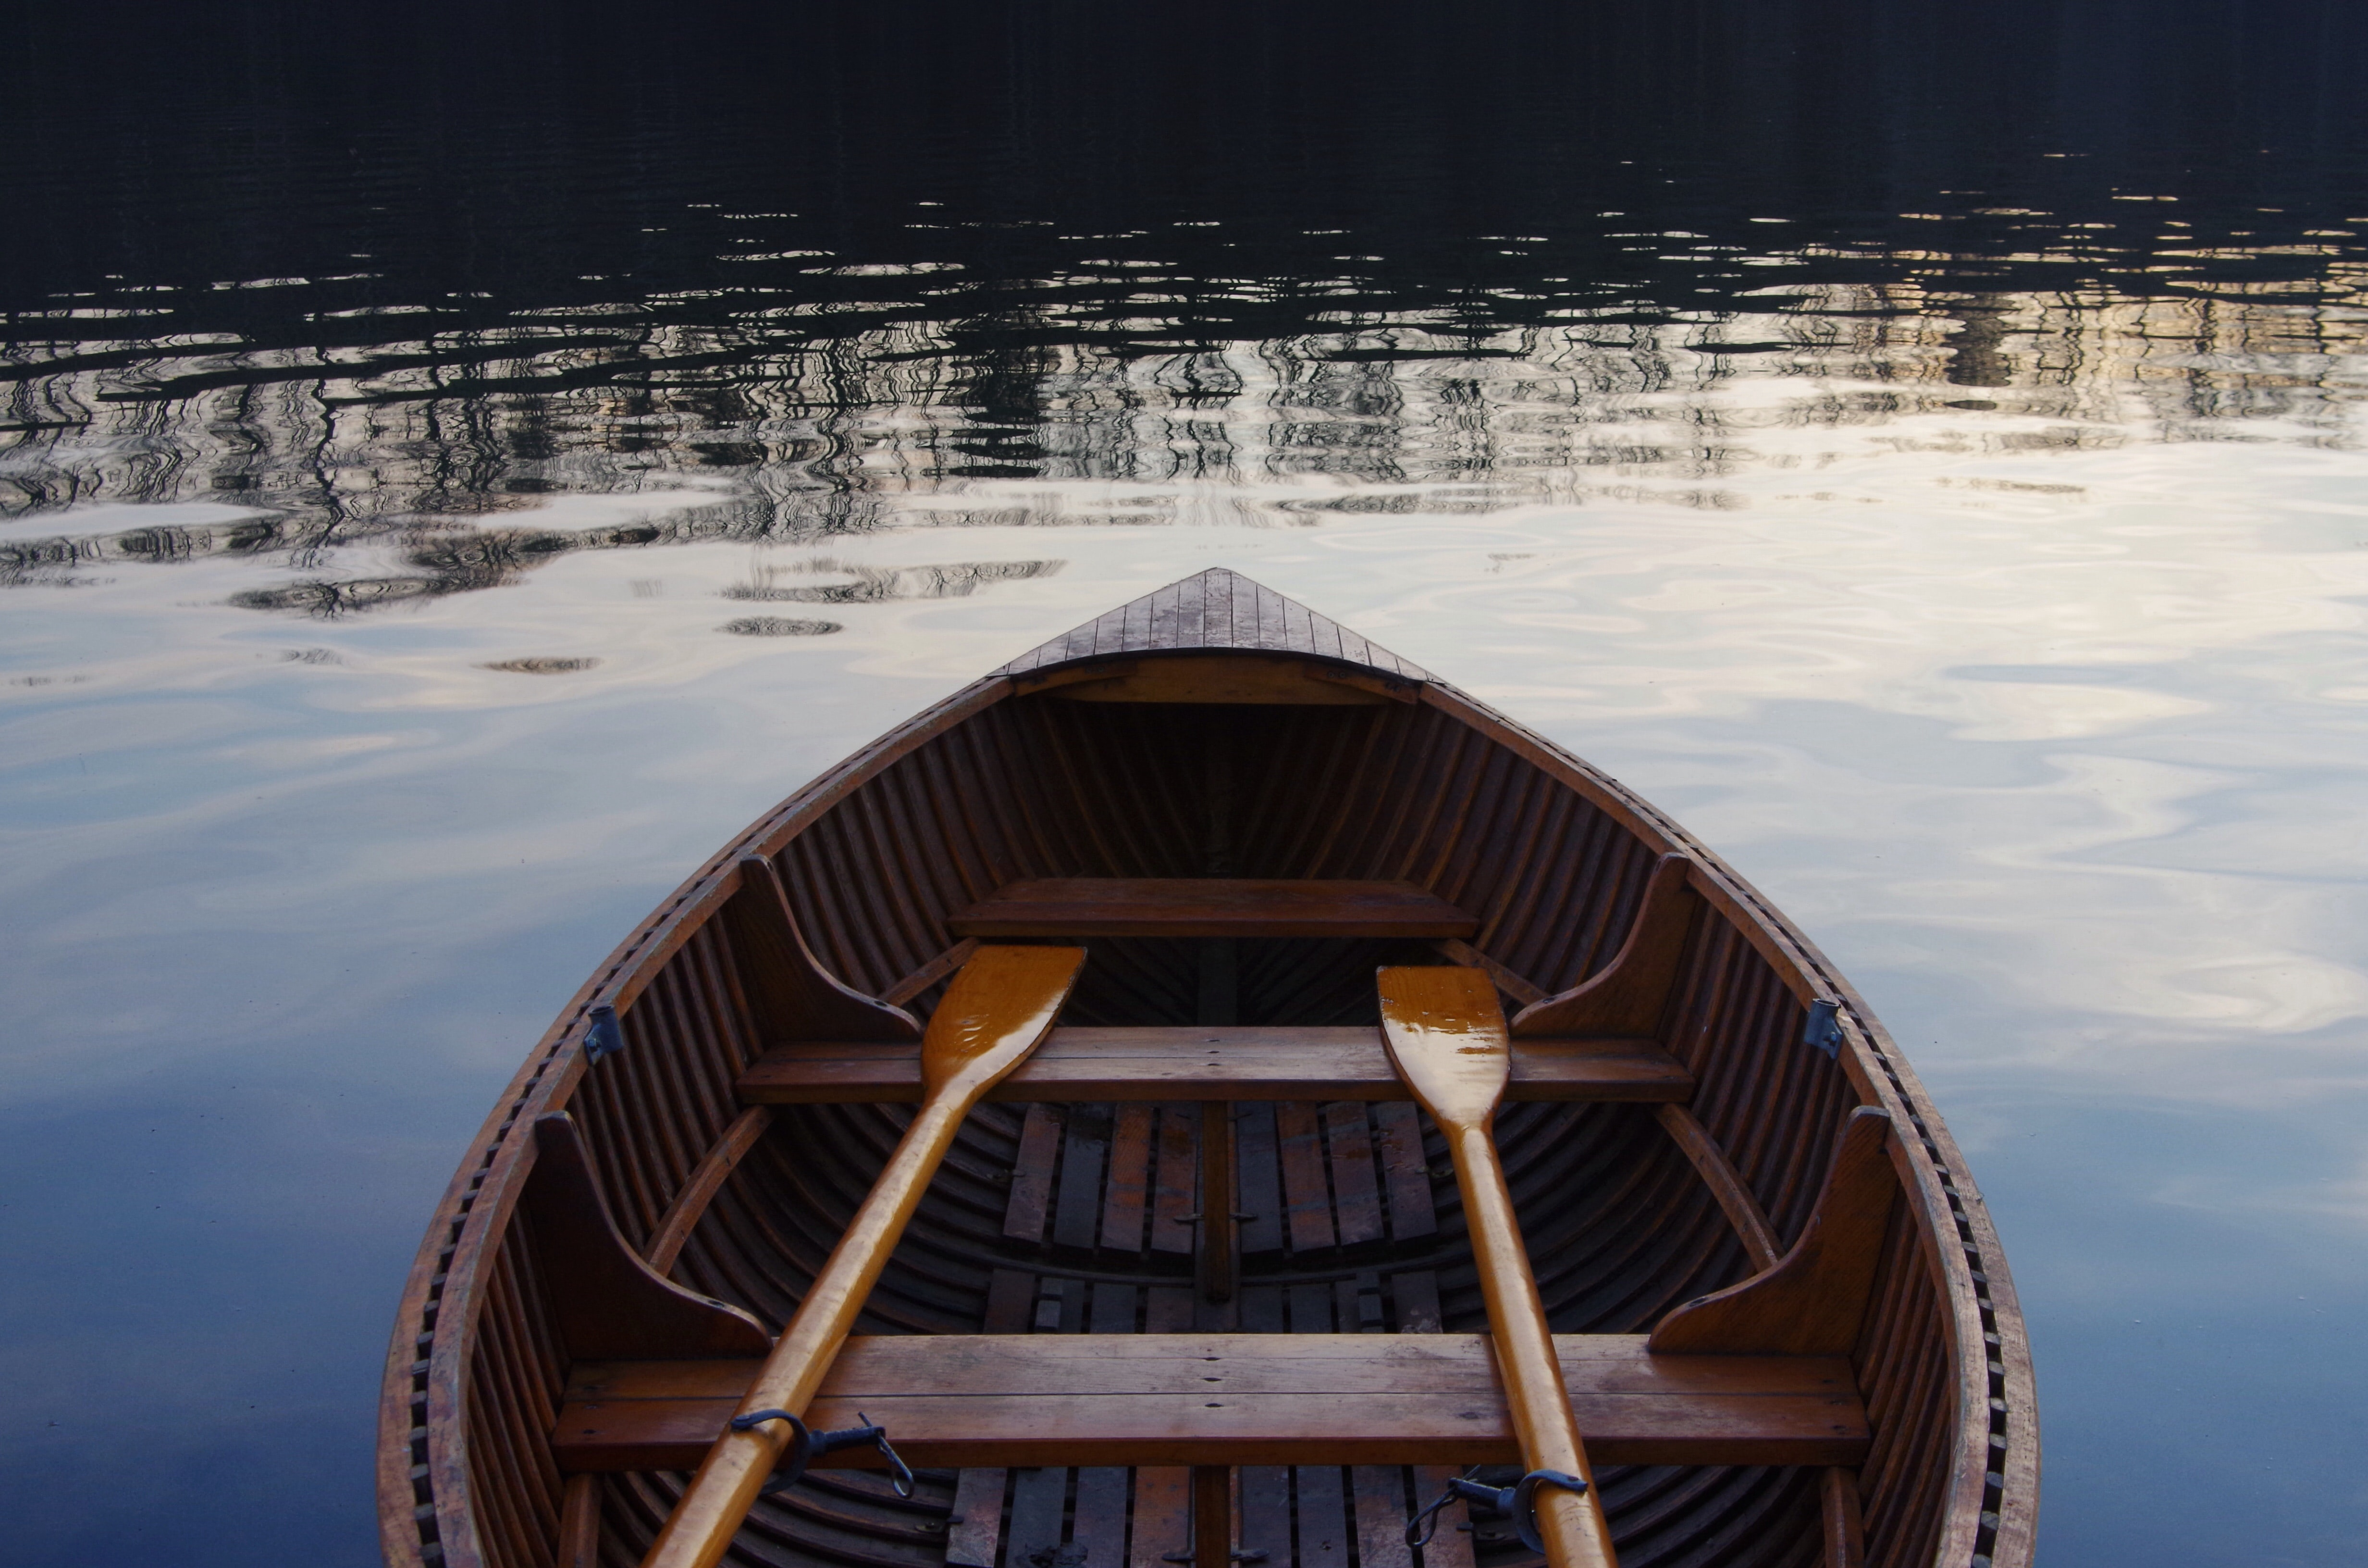 The inside of a small wooden boat on water with two oars